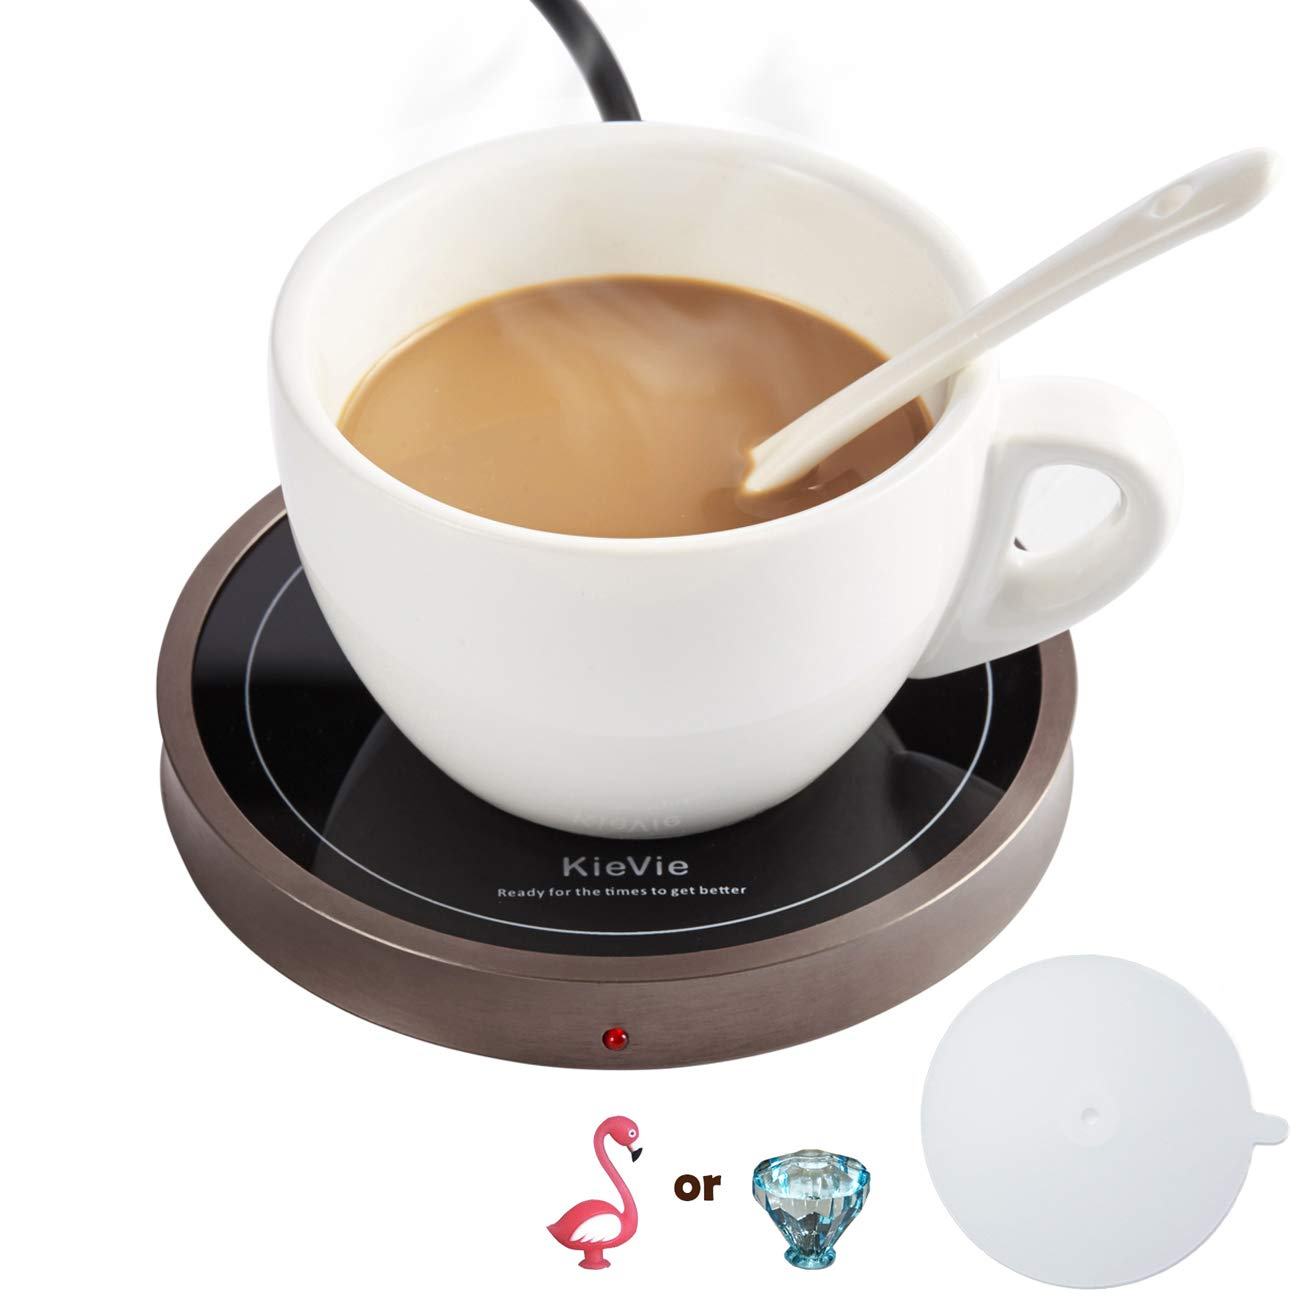 Coffee Warmer for Warming Tea, Coffee,Cocoa, Mugs Warmer Have Pyroceram Warming Plate and Metal Shell, Constant Temperature Control, Waterproof, 18W Beverage Warmer, 1PC Silicone Cover Lid Free Gift Victoria World